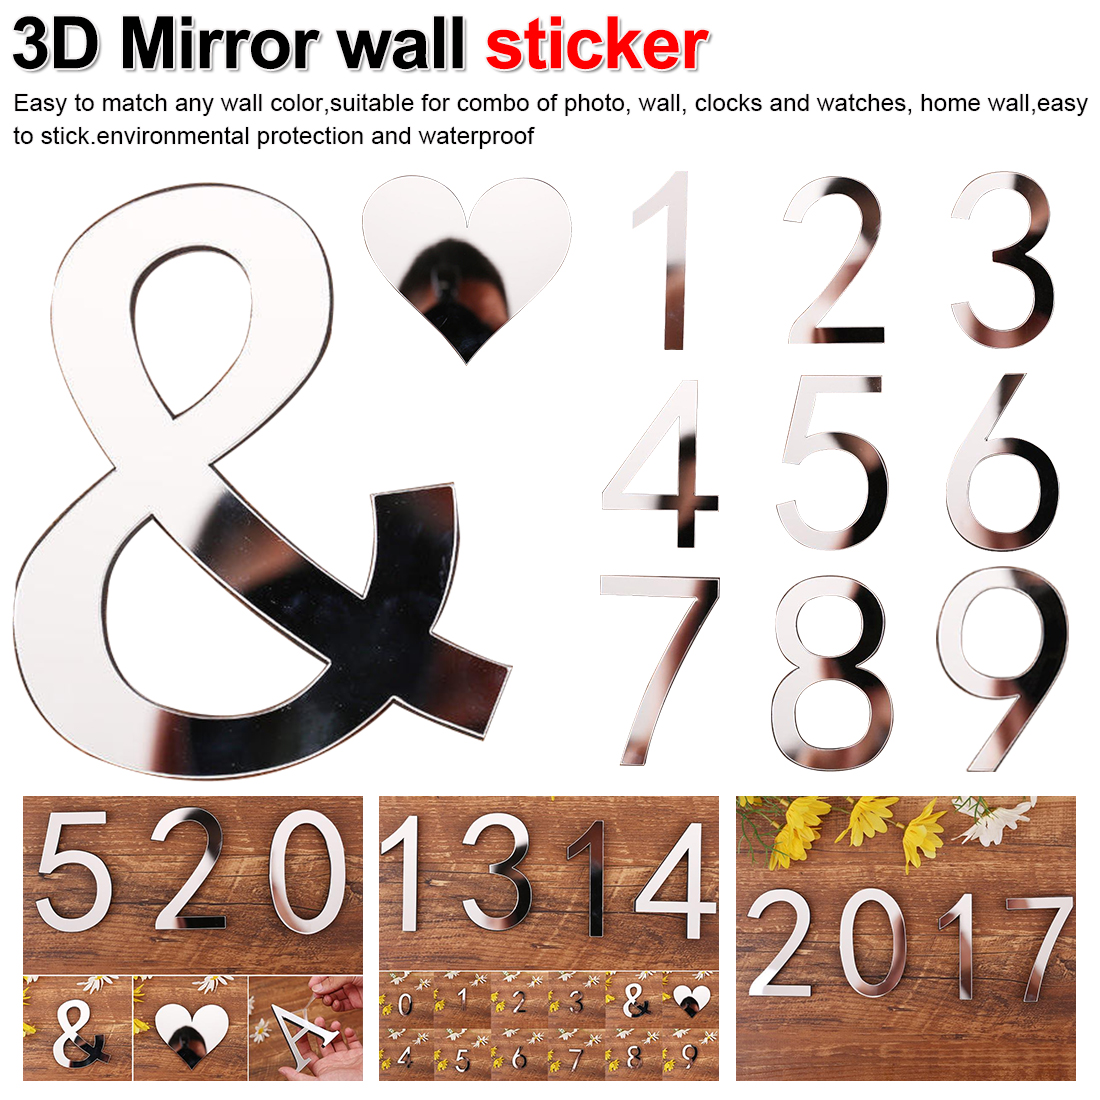 Home Decor Bedroom Living Room DIY Art Mural 3D Arabic Numerals 0-9 Acrylic Mirror Surface Wall Sticker Self-adhesive Poster